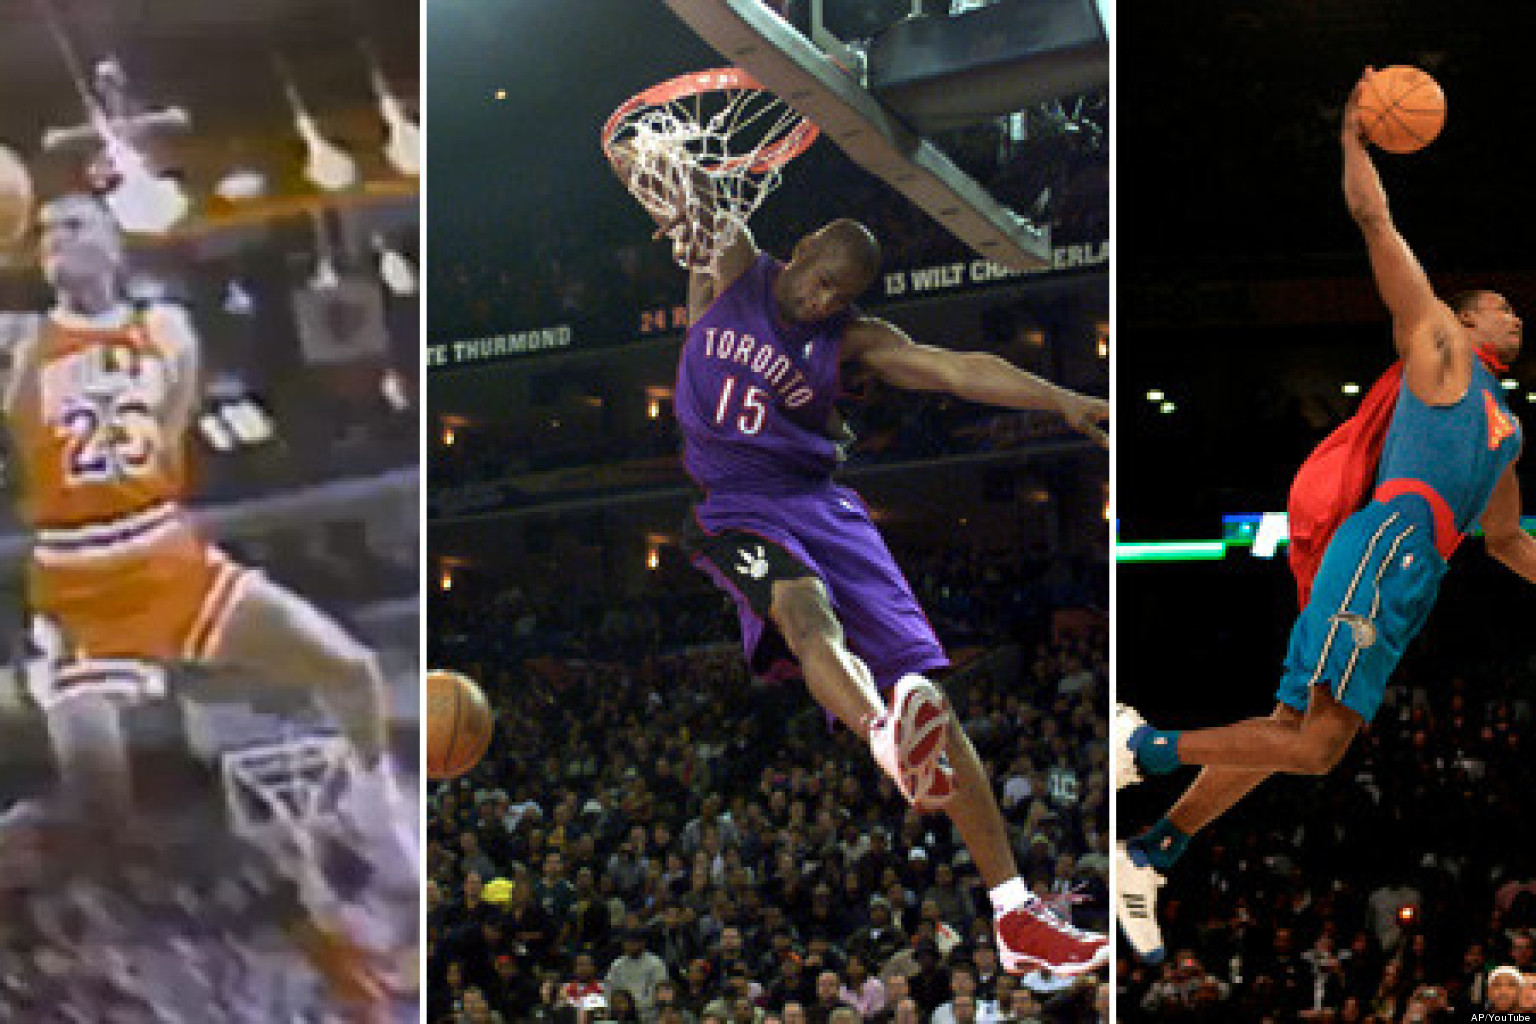 Best Slam Dunk Contest Dunks Bracket Michael Jordan Dr J And Vince Carter With All Time Slams